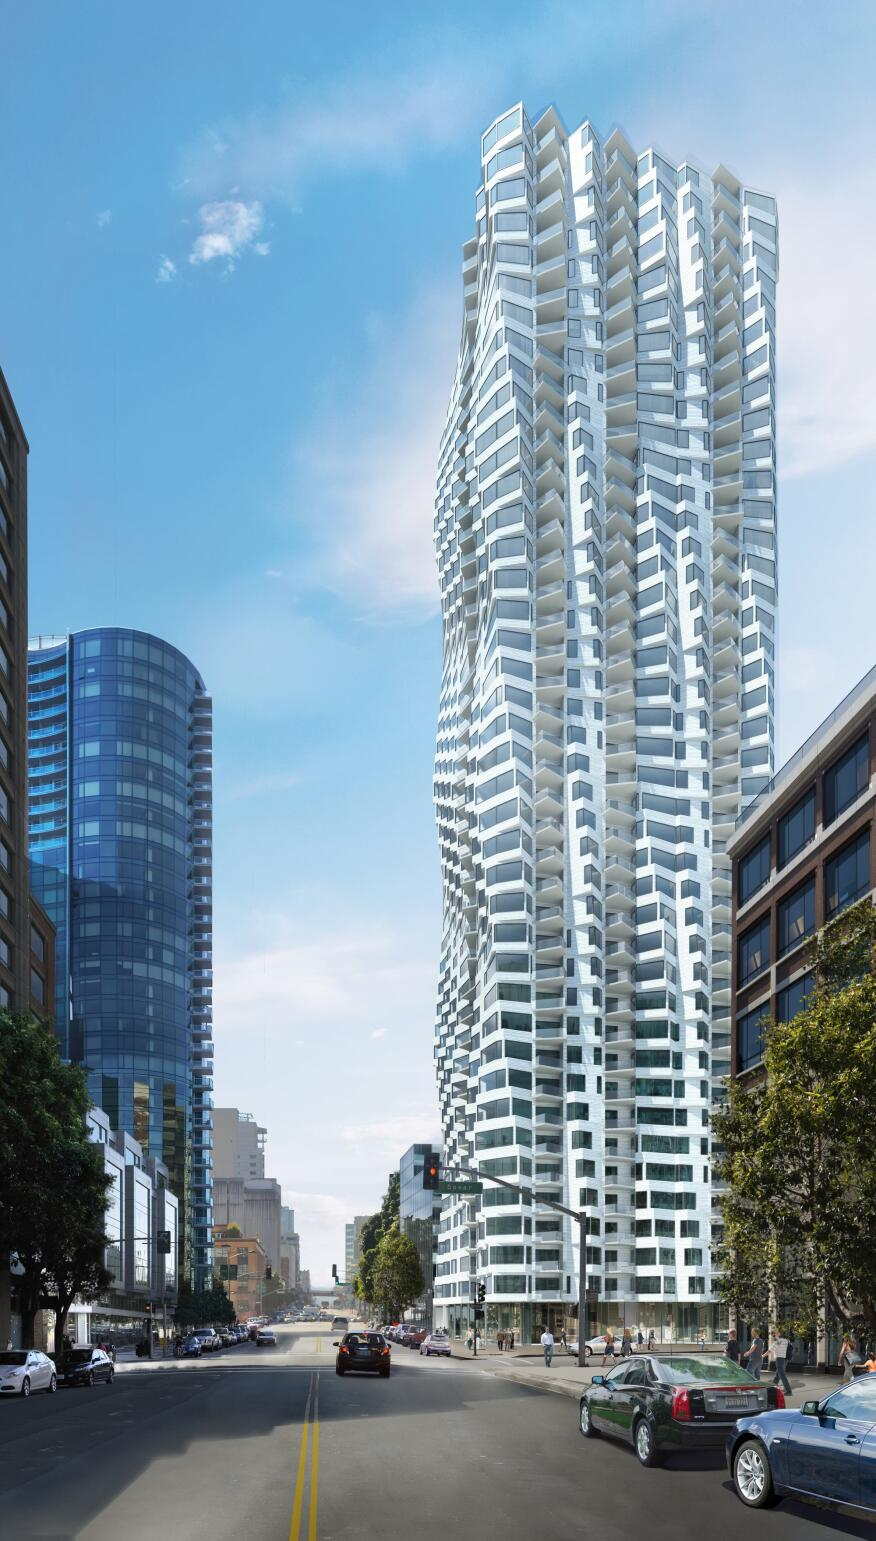 Preliminary renderings of Folsom Street Tower in San Francisco, by Studio Gang Architects, highlight its torquing form, thanks to bay windows that rotate in plan as the building rises.